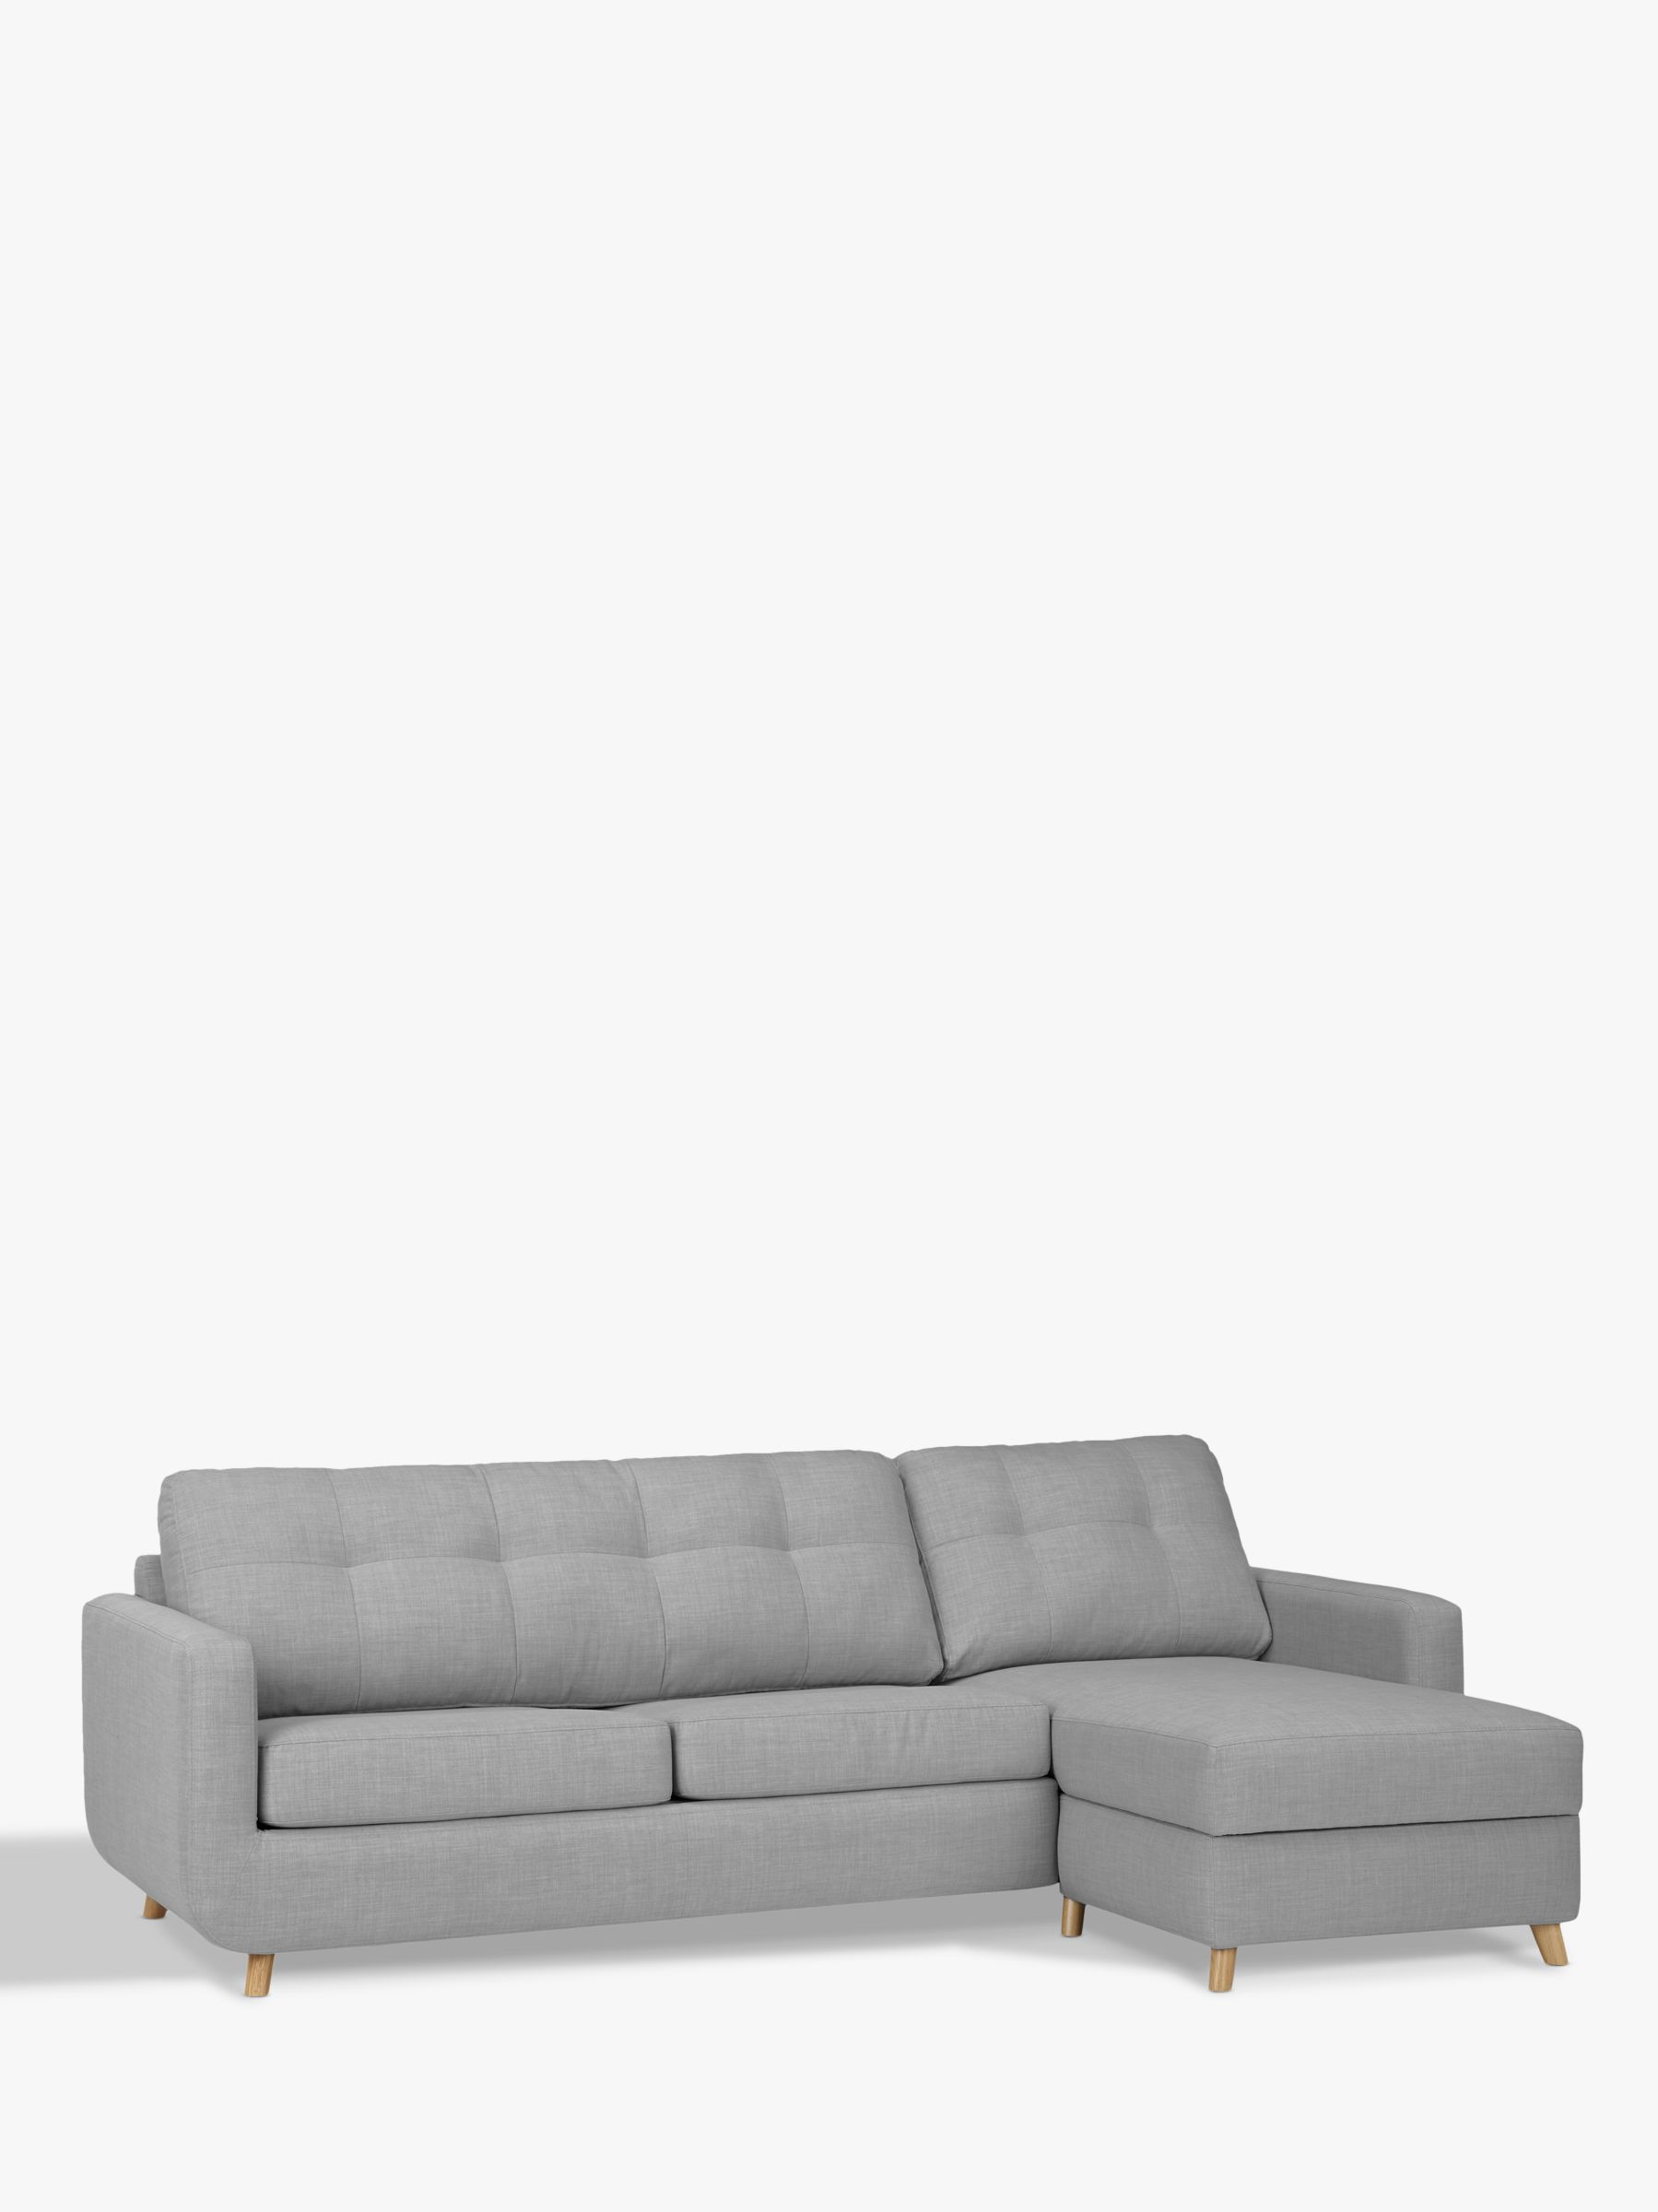 victoria clic clac sofa bed review 3 seater covers online india beds settees john lewis partners barbican rhf chaise with storage